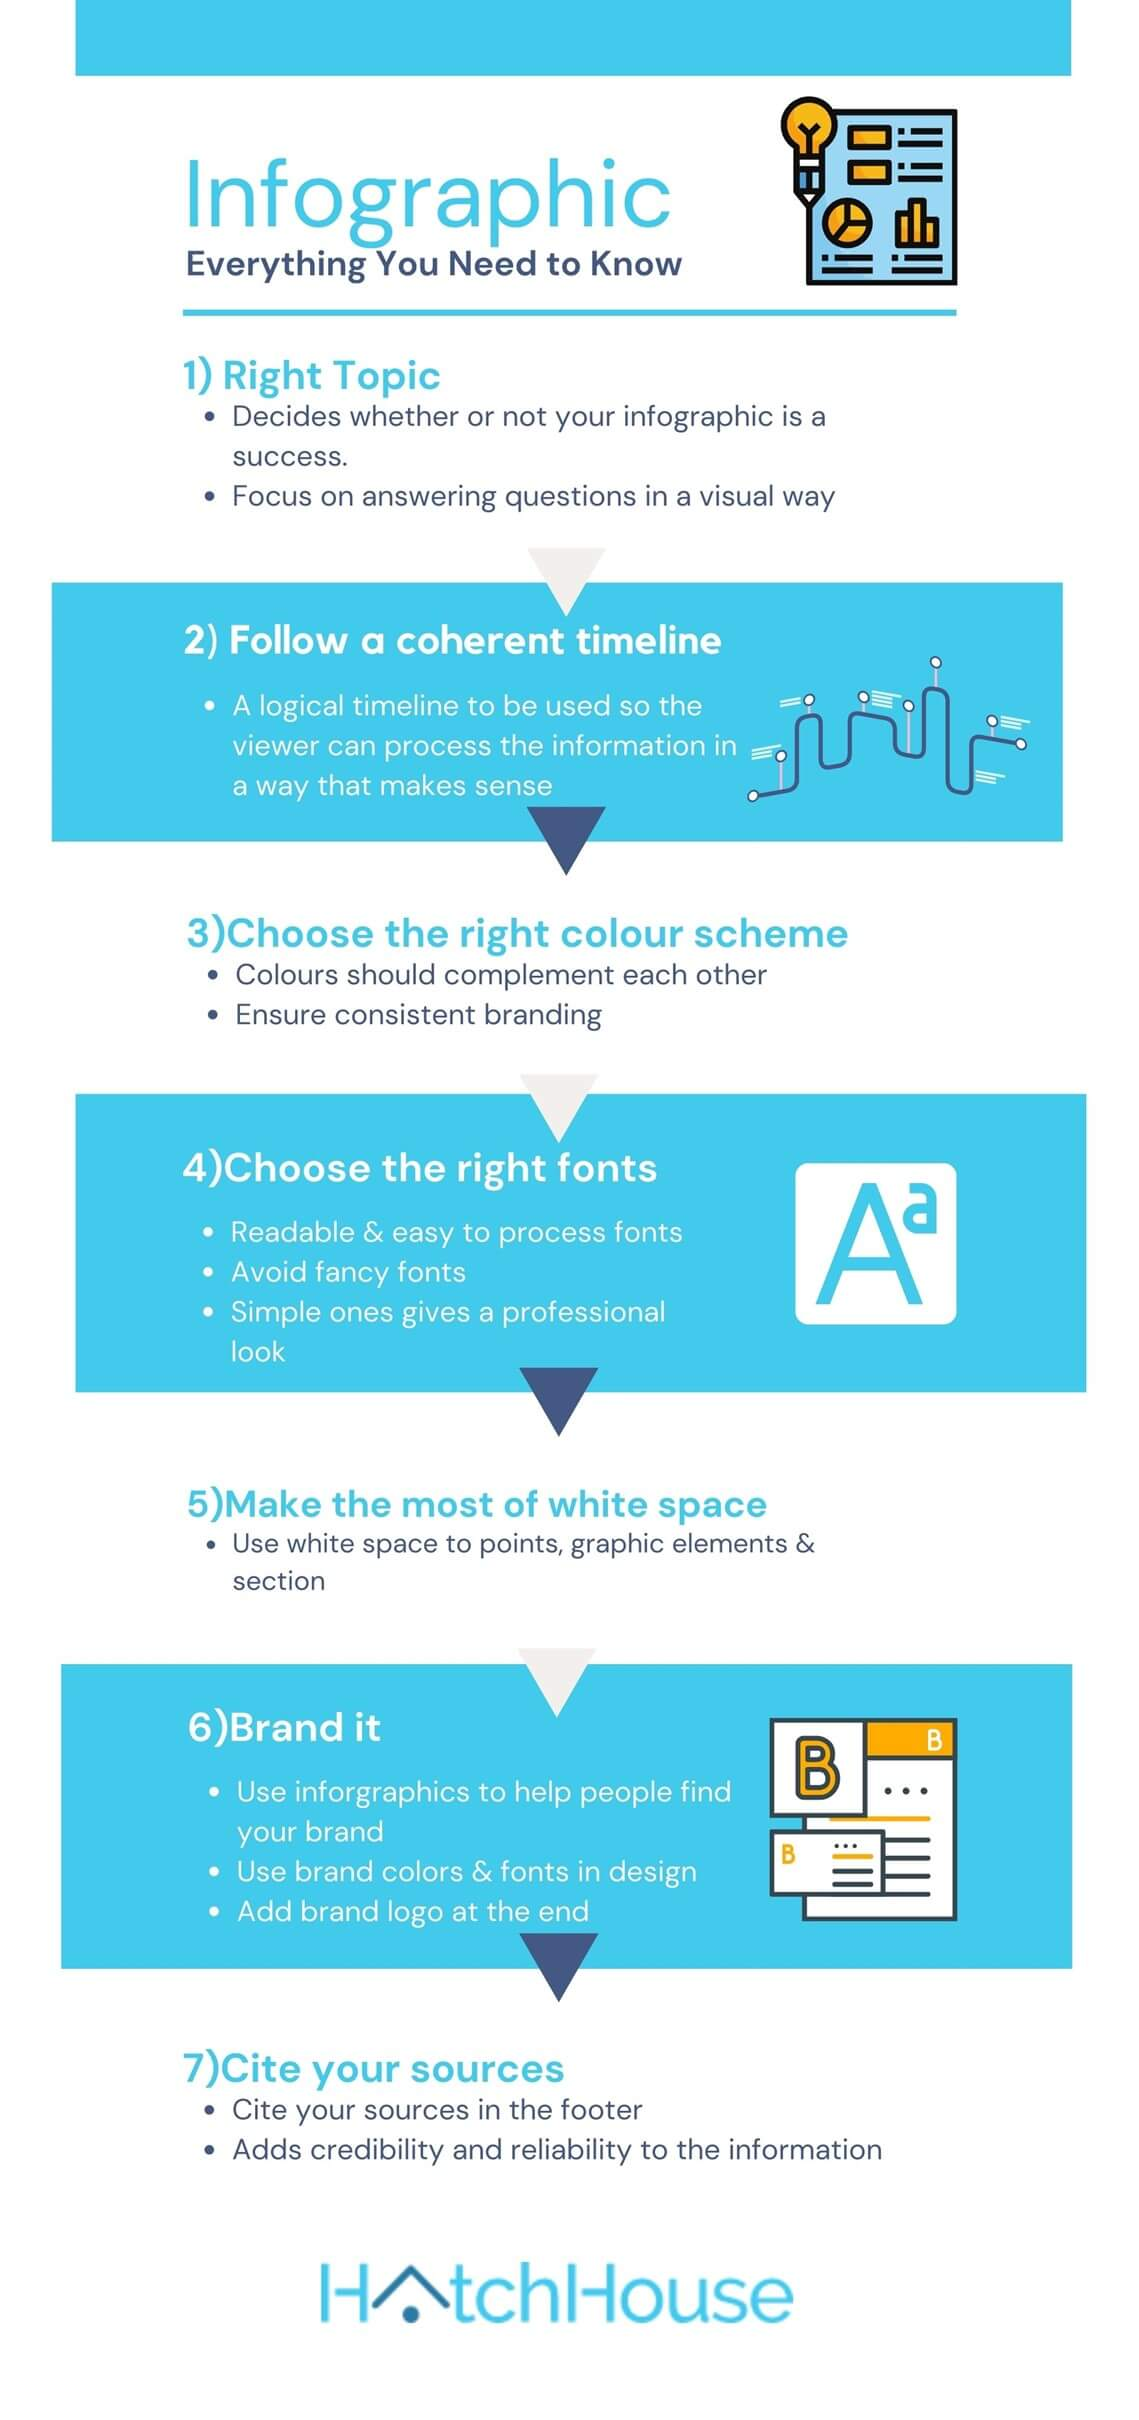 everything you need to know about infographic